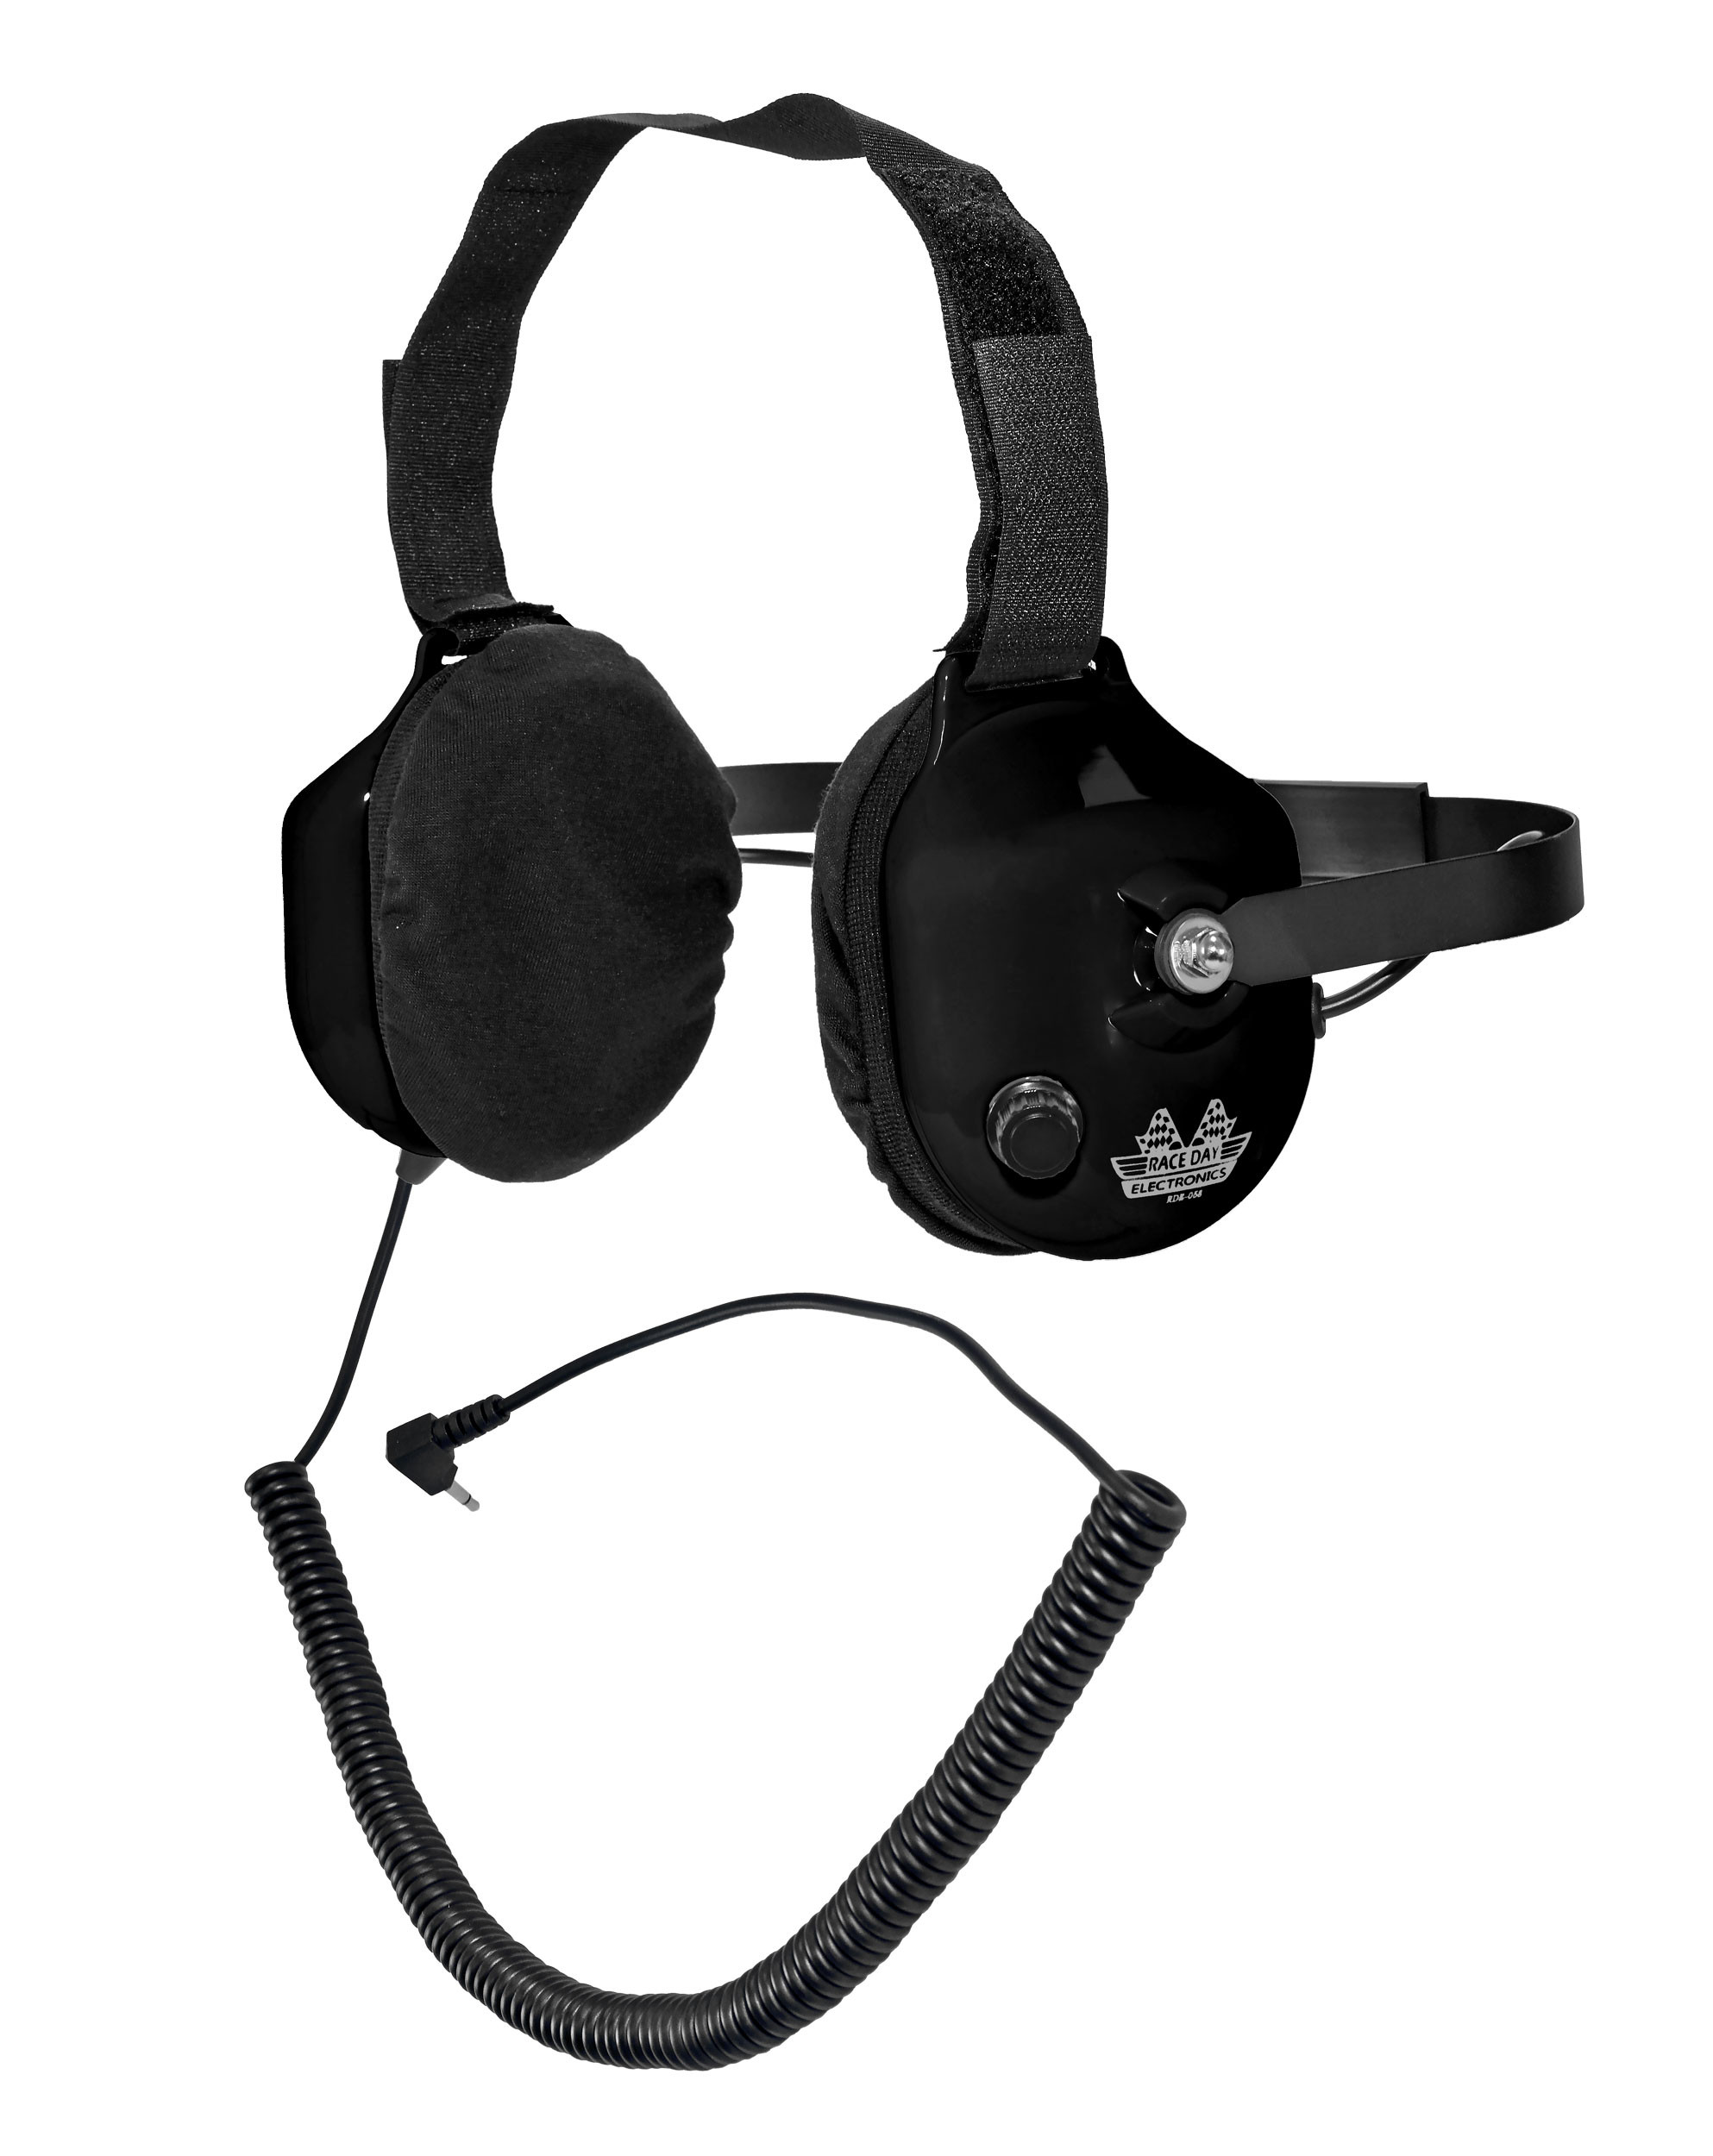 Behind The Head Racing Scanner Headset